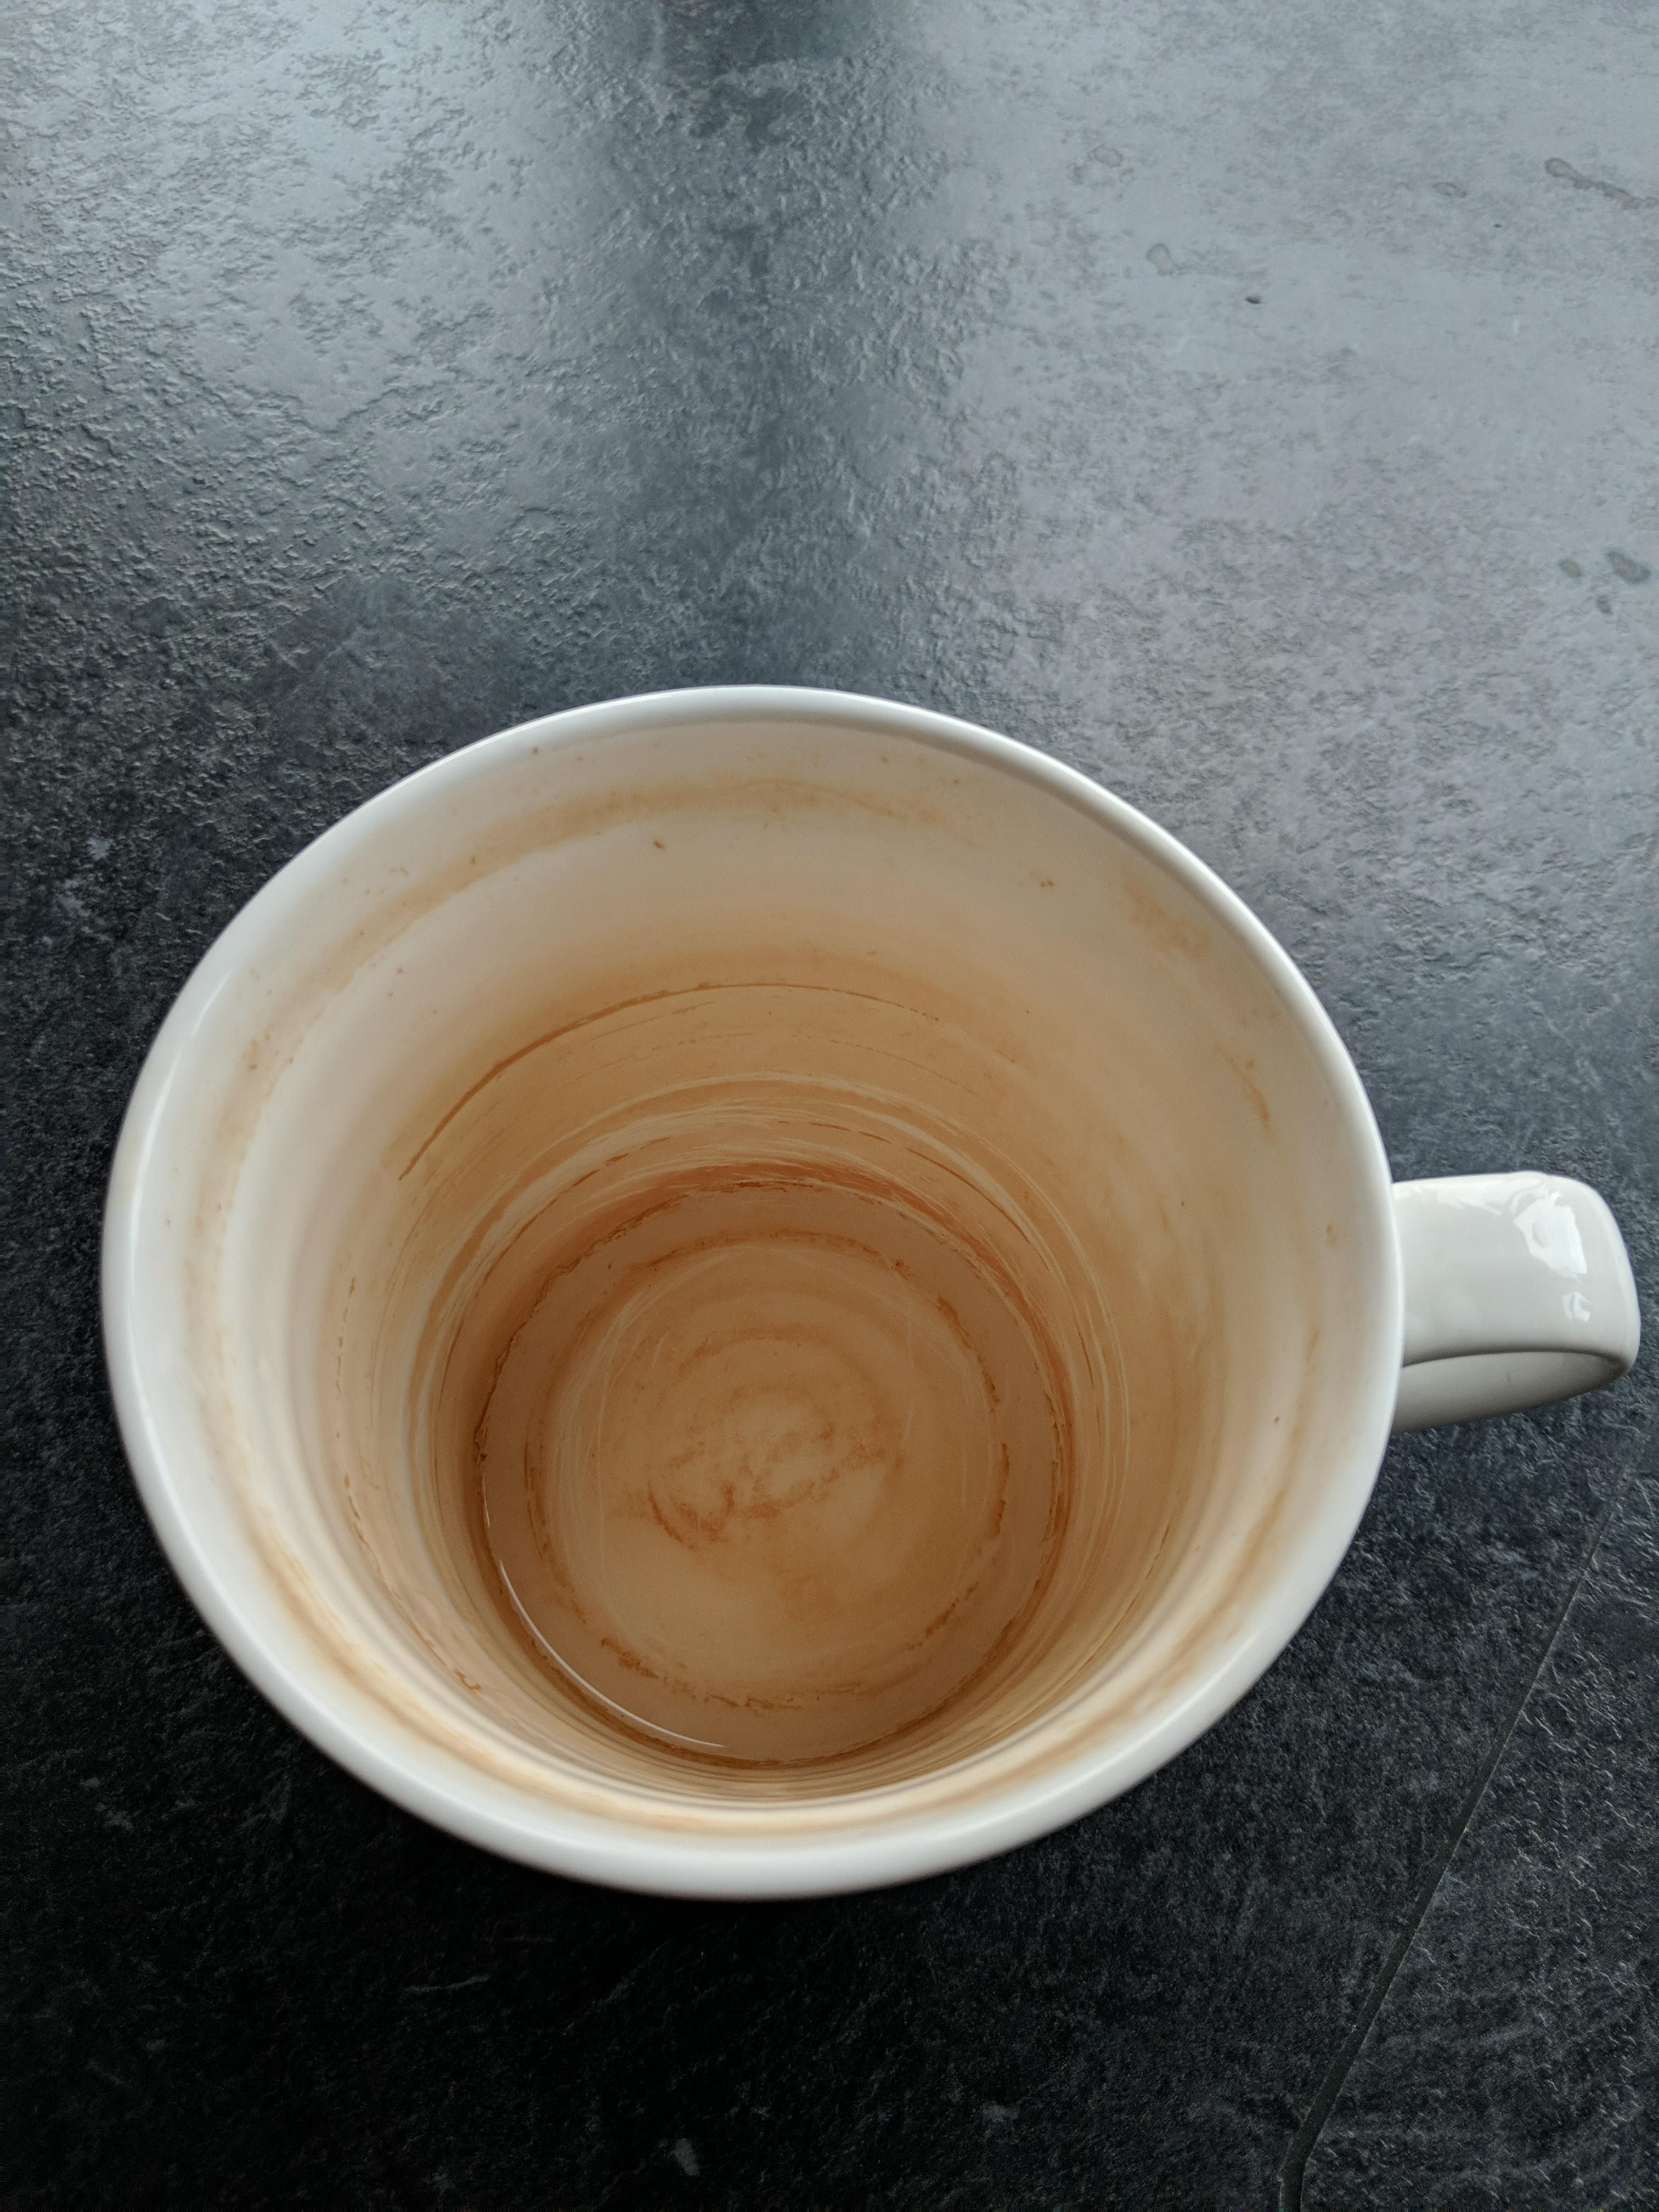 My stepson reads my Reddit posts  Your cup needs a clean! | Mildly